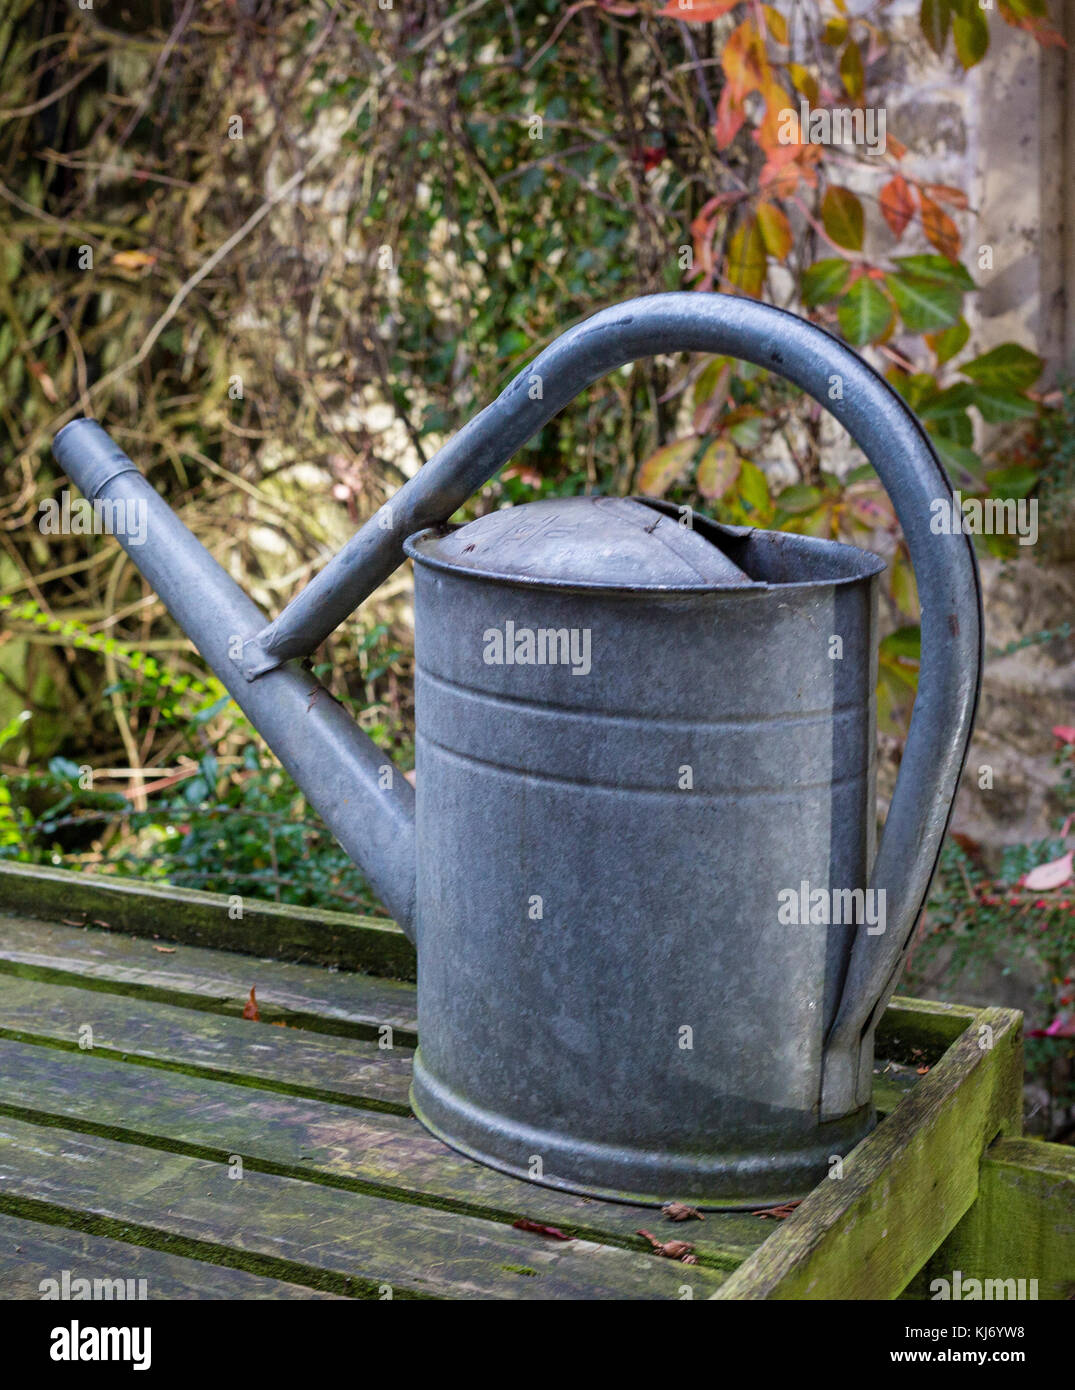 Old fashioned galvanized steel metal watering can Stock Photo